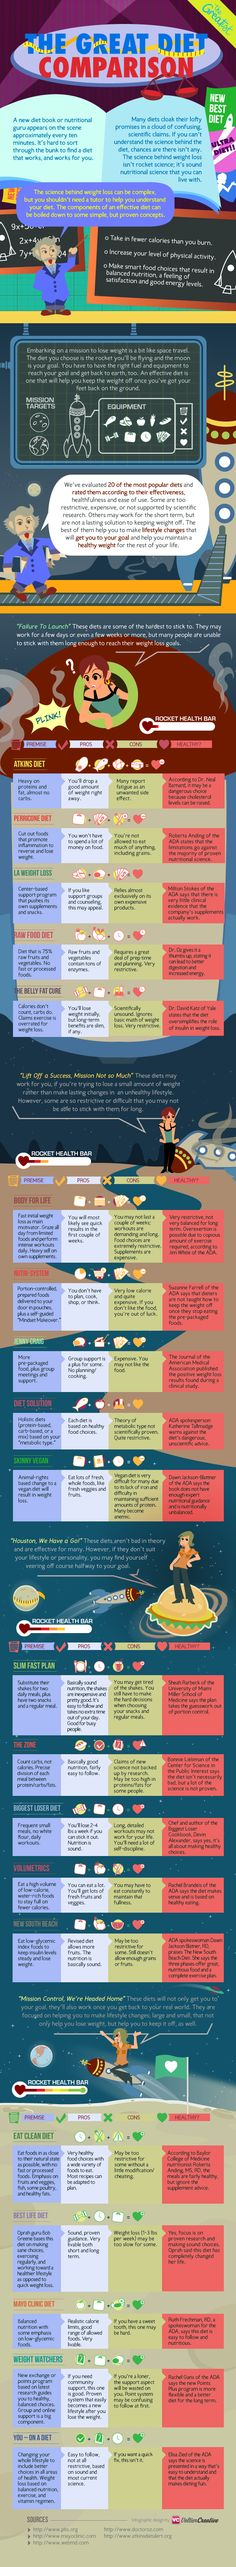 The Great Diet Comparison [Infographic] | Greatist